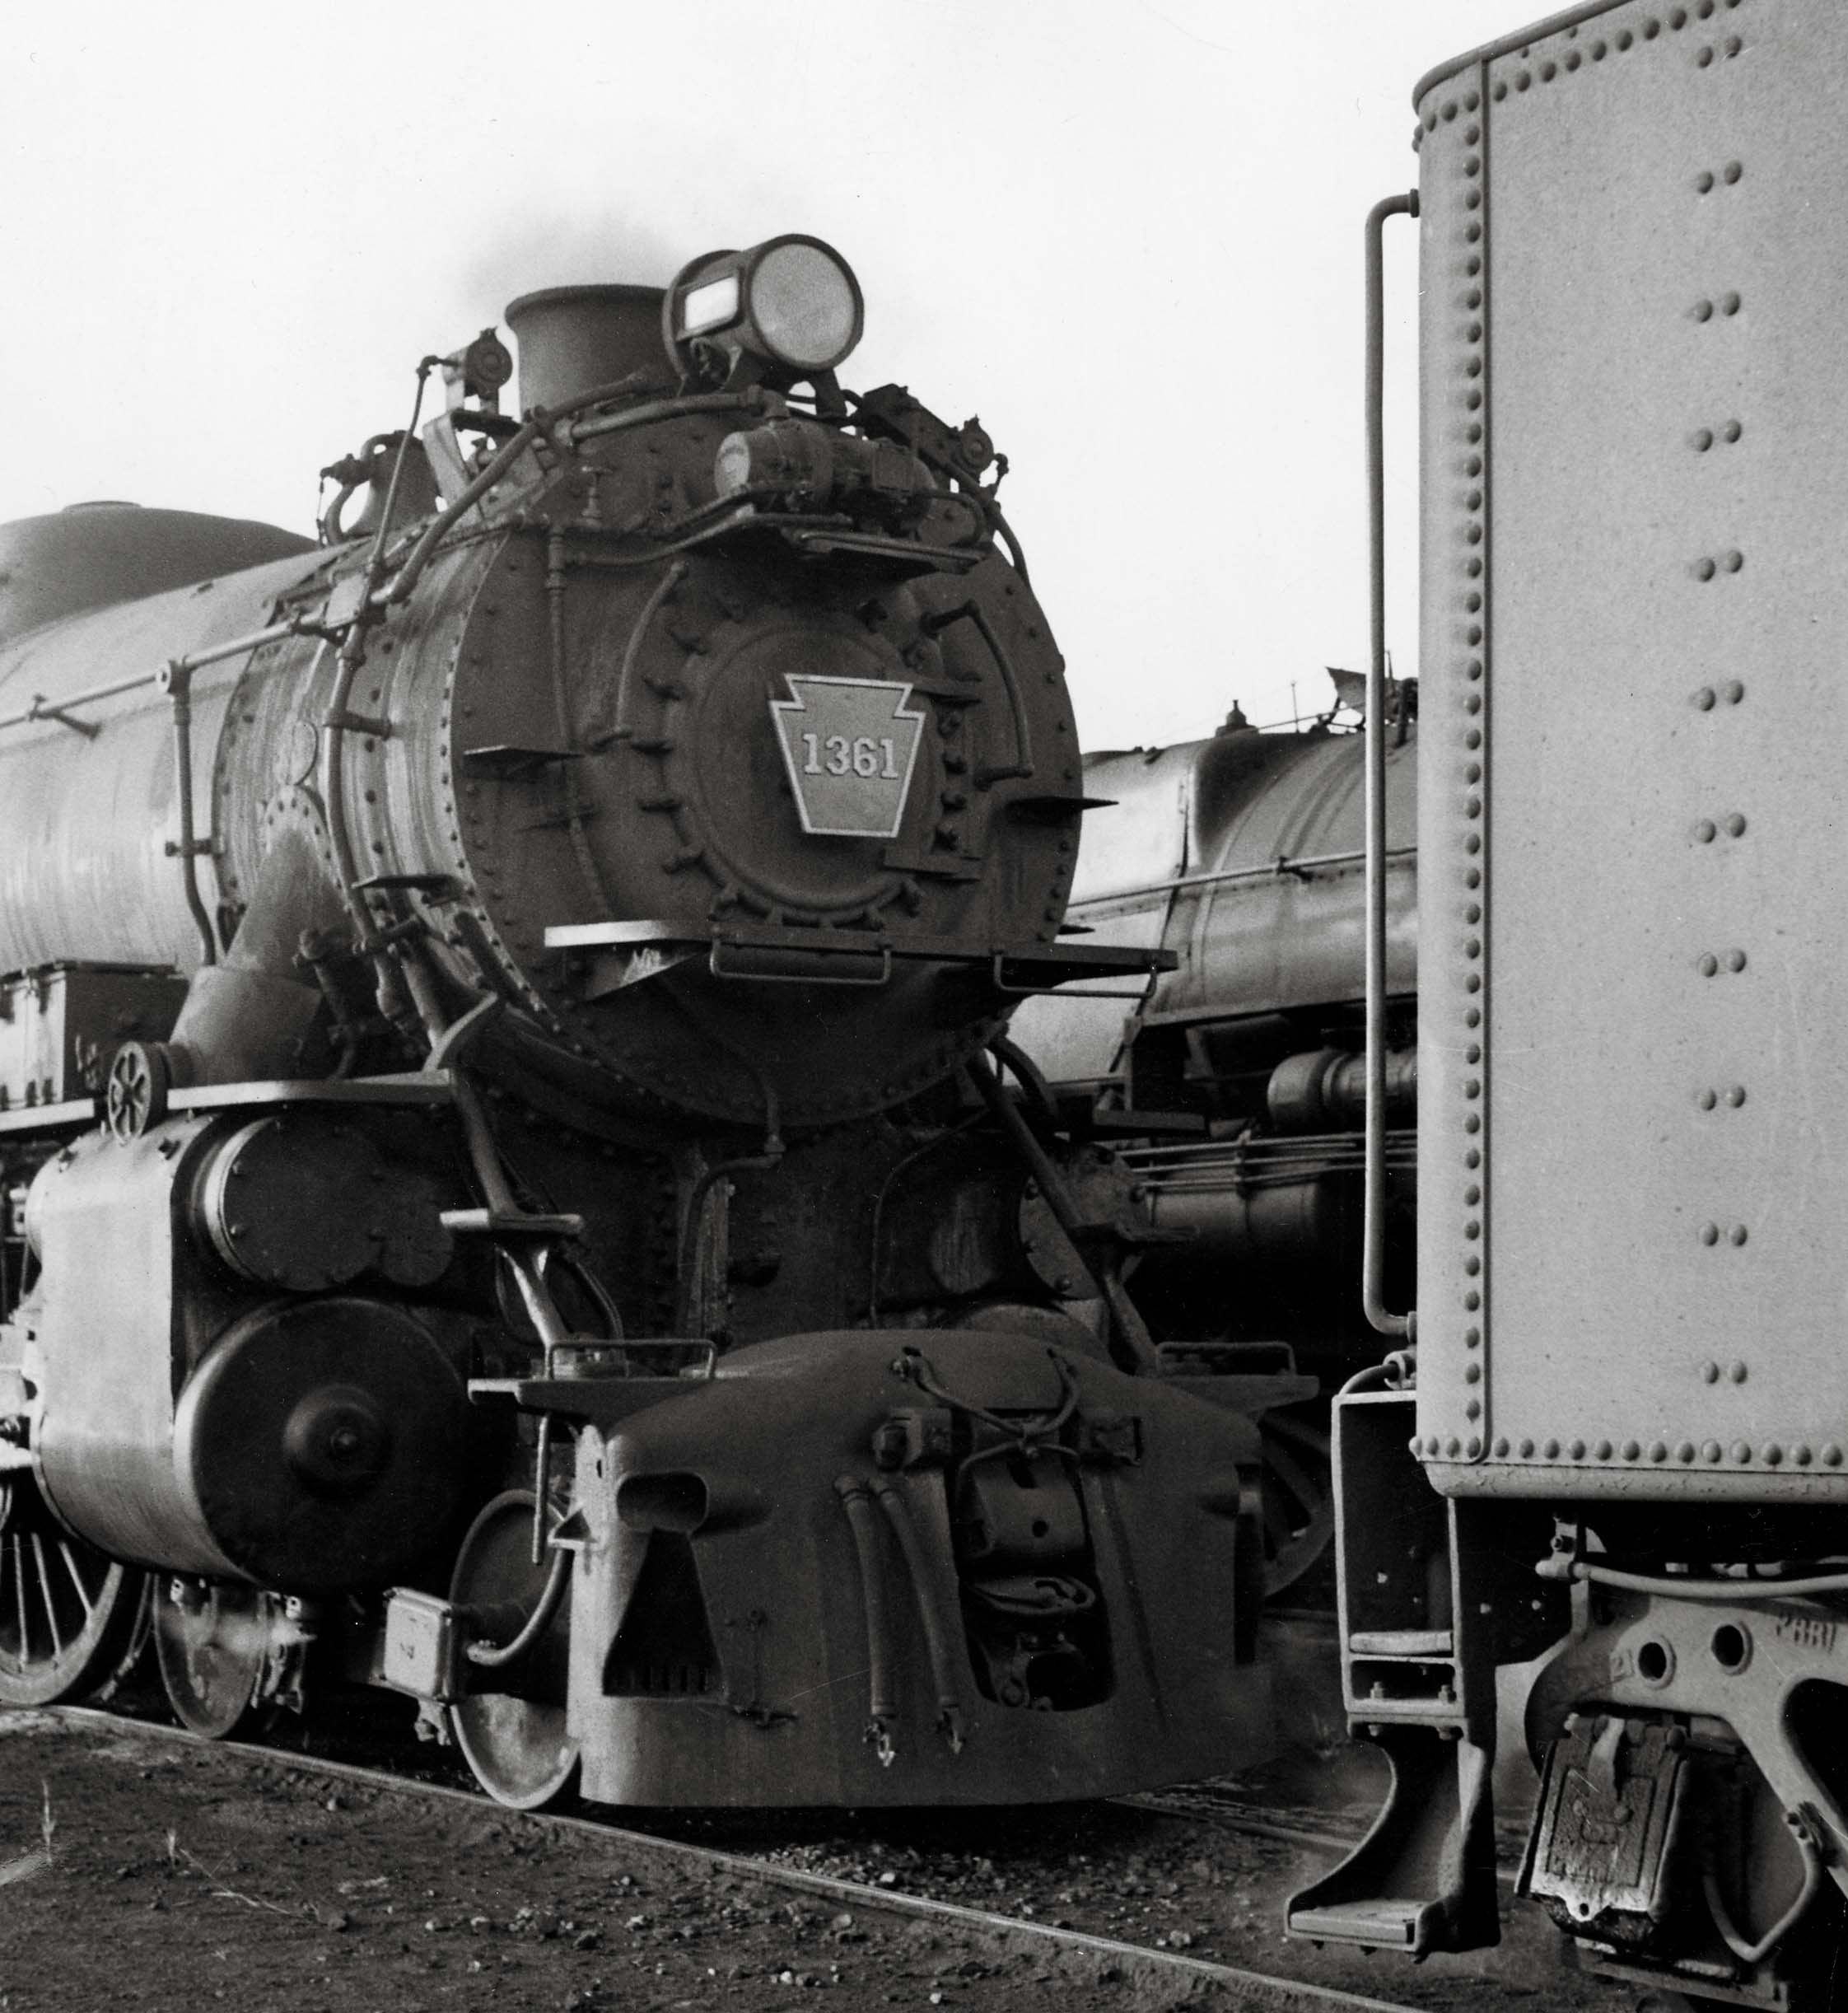 1361 was just another K4 when noted photographer Philip R. Hastings found  her in the company of two sisters at Bay Head Junction, N.J., in 1955.